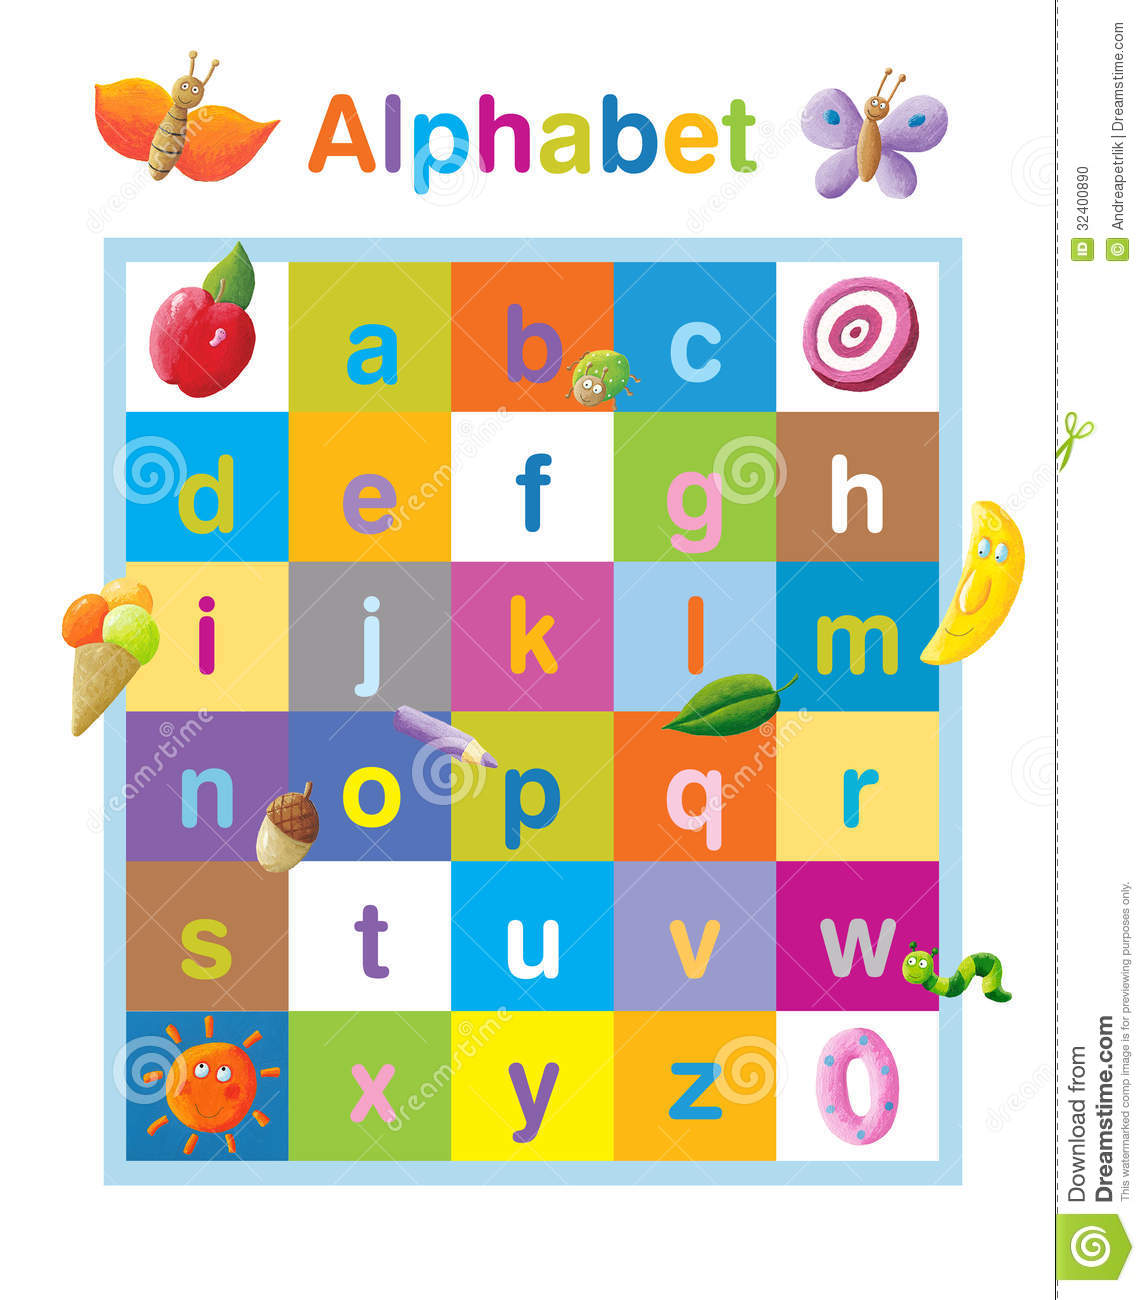 Clipart lower case letters svg library stock Funny Alphabet Lower Case Stock Photo - Image: 32400890 svg library stock